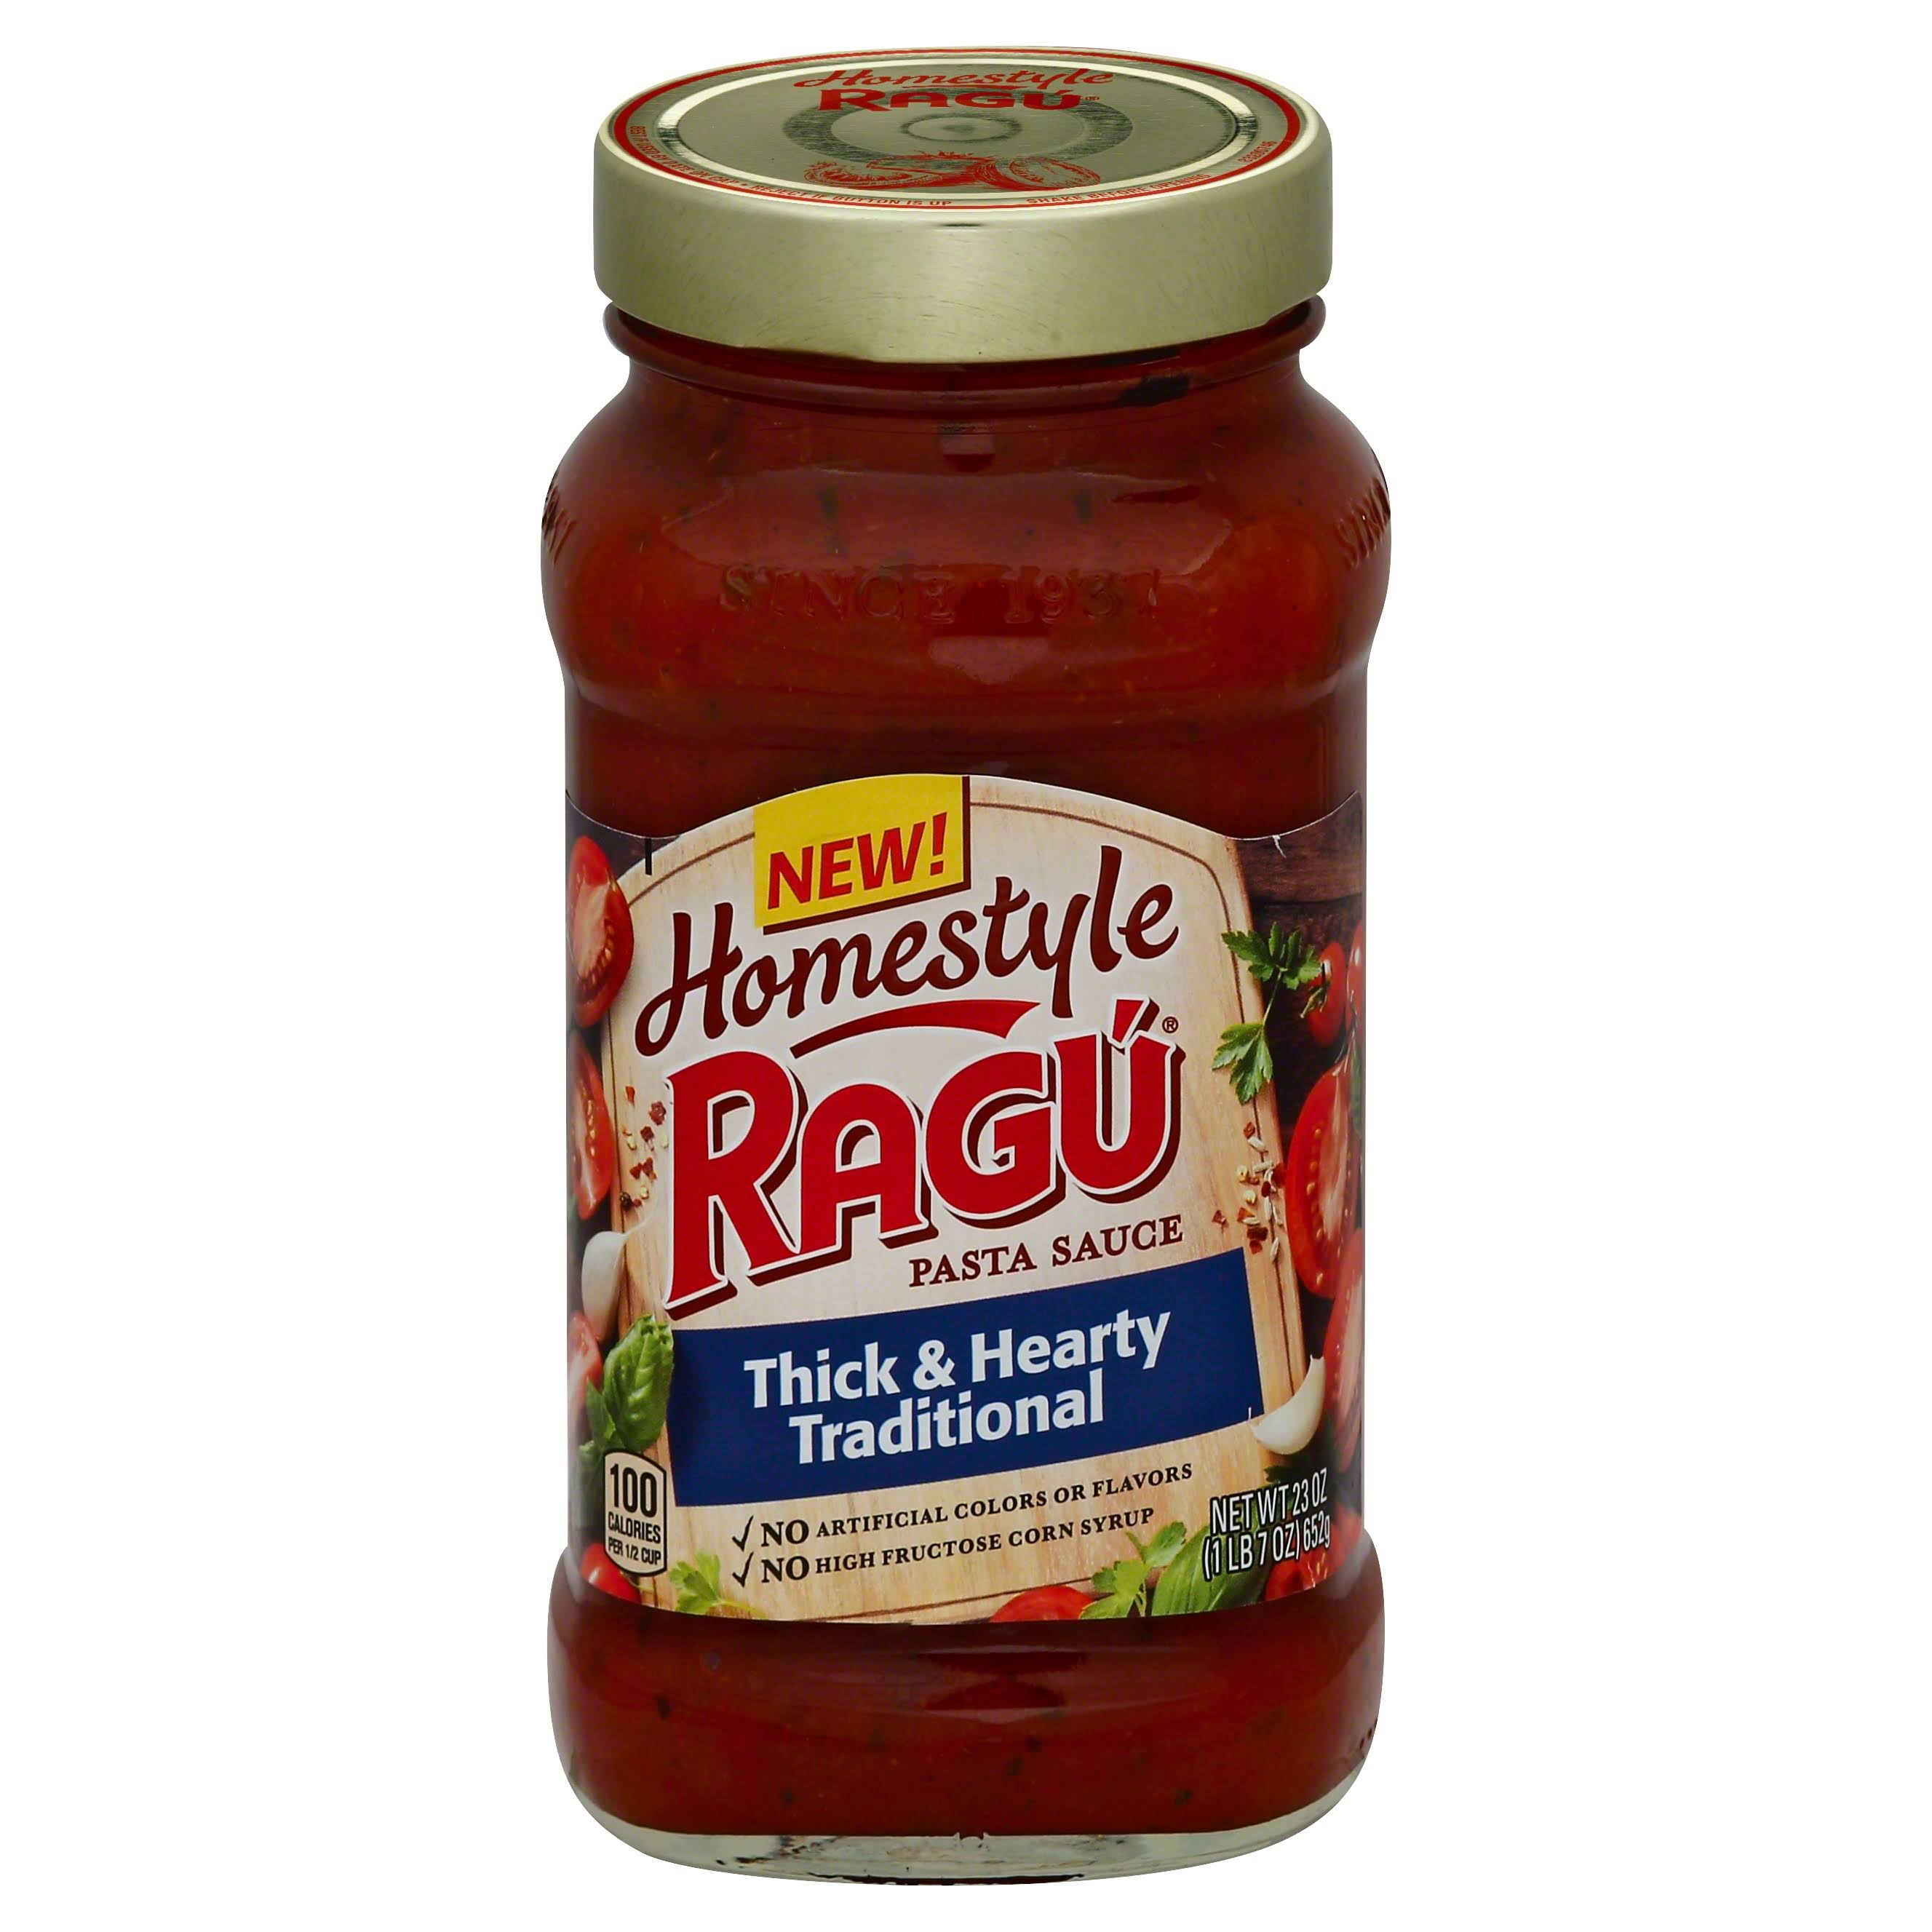 Ragú Homestyle Thick and Hearty Traditional Pasta Sauce - 23oz